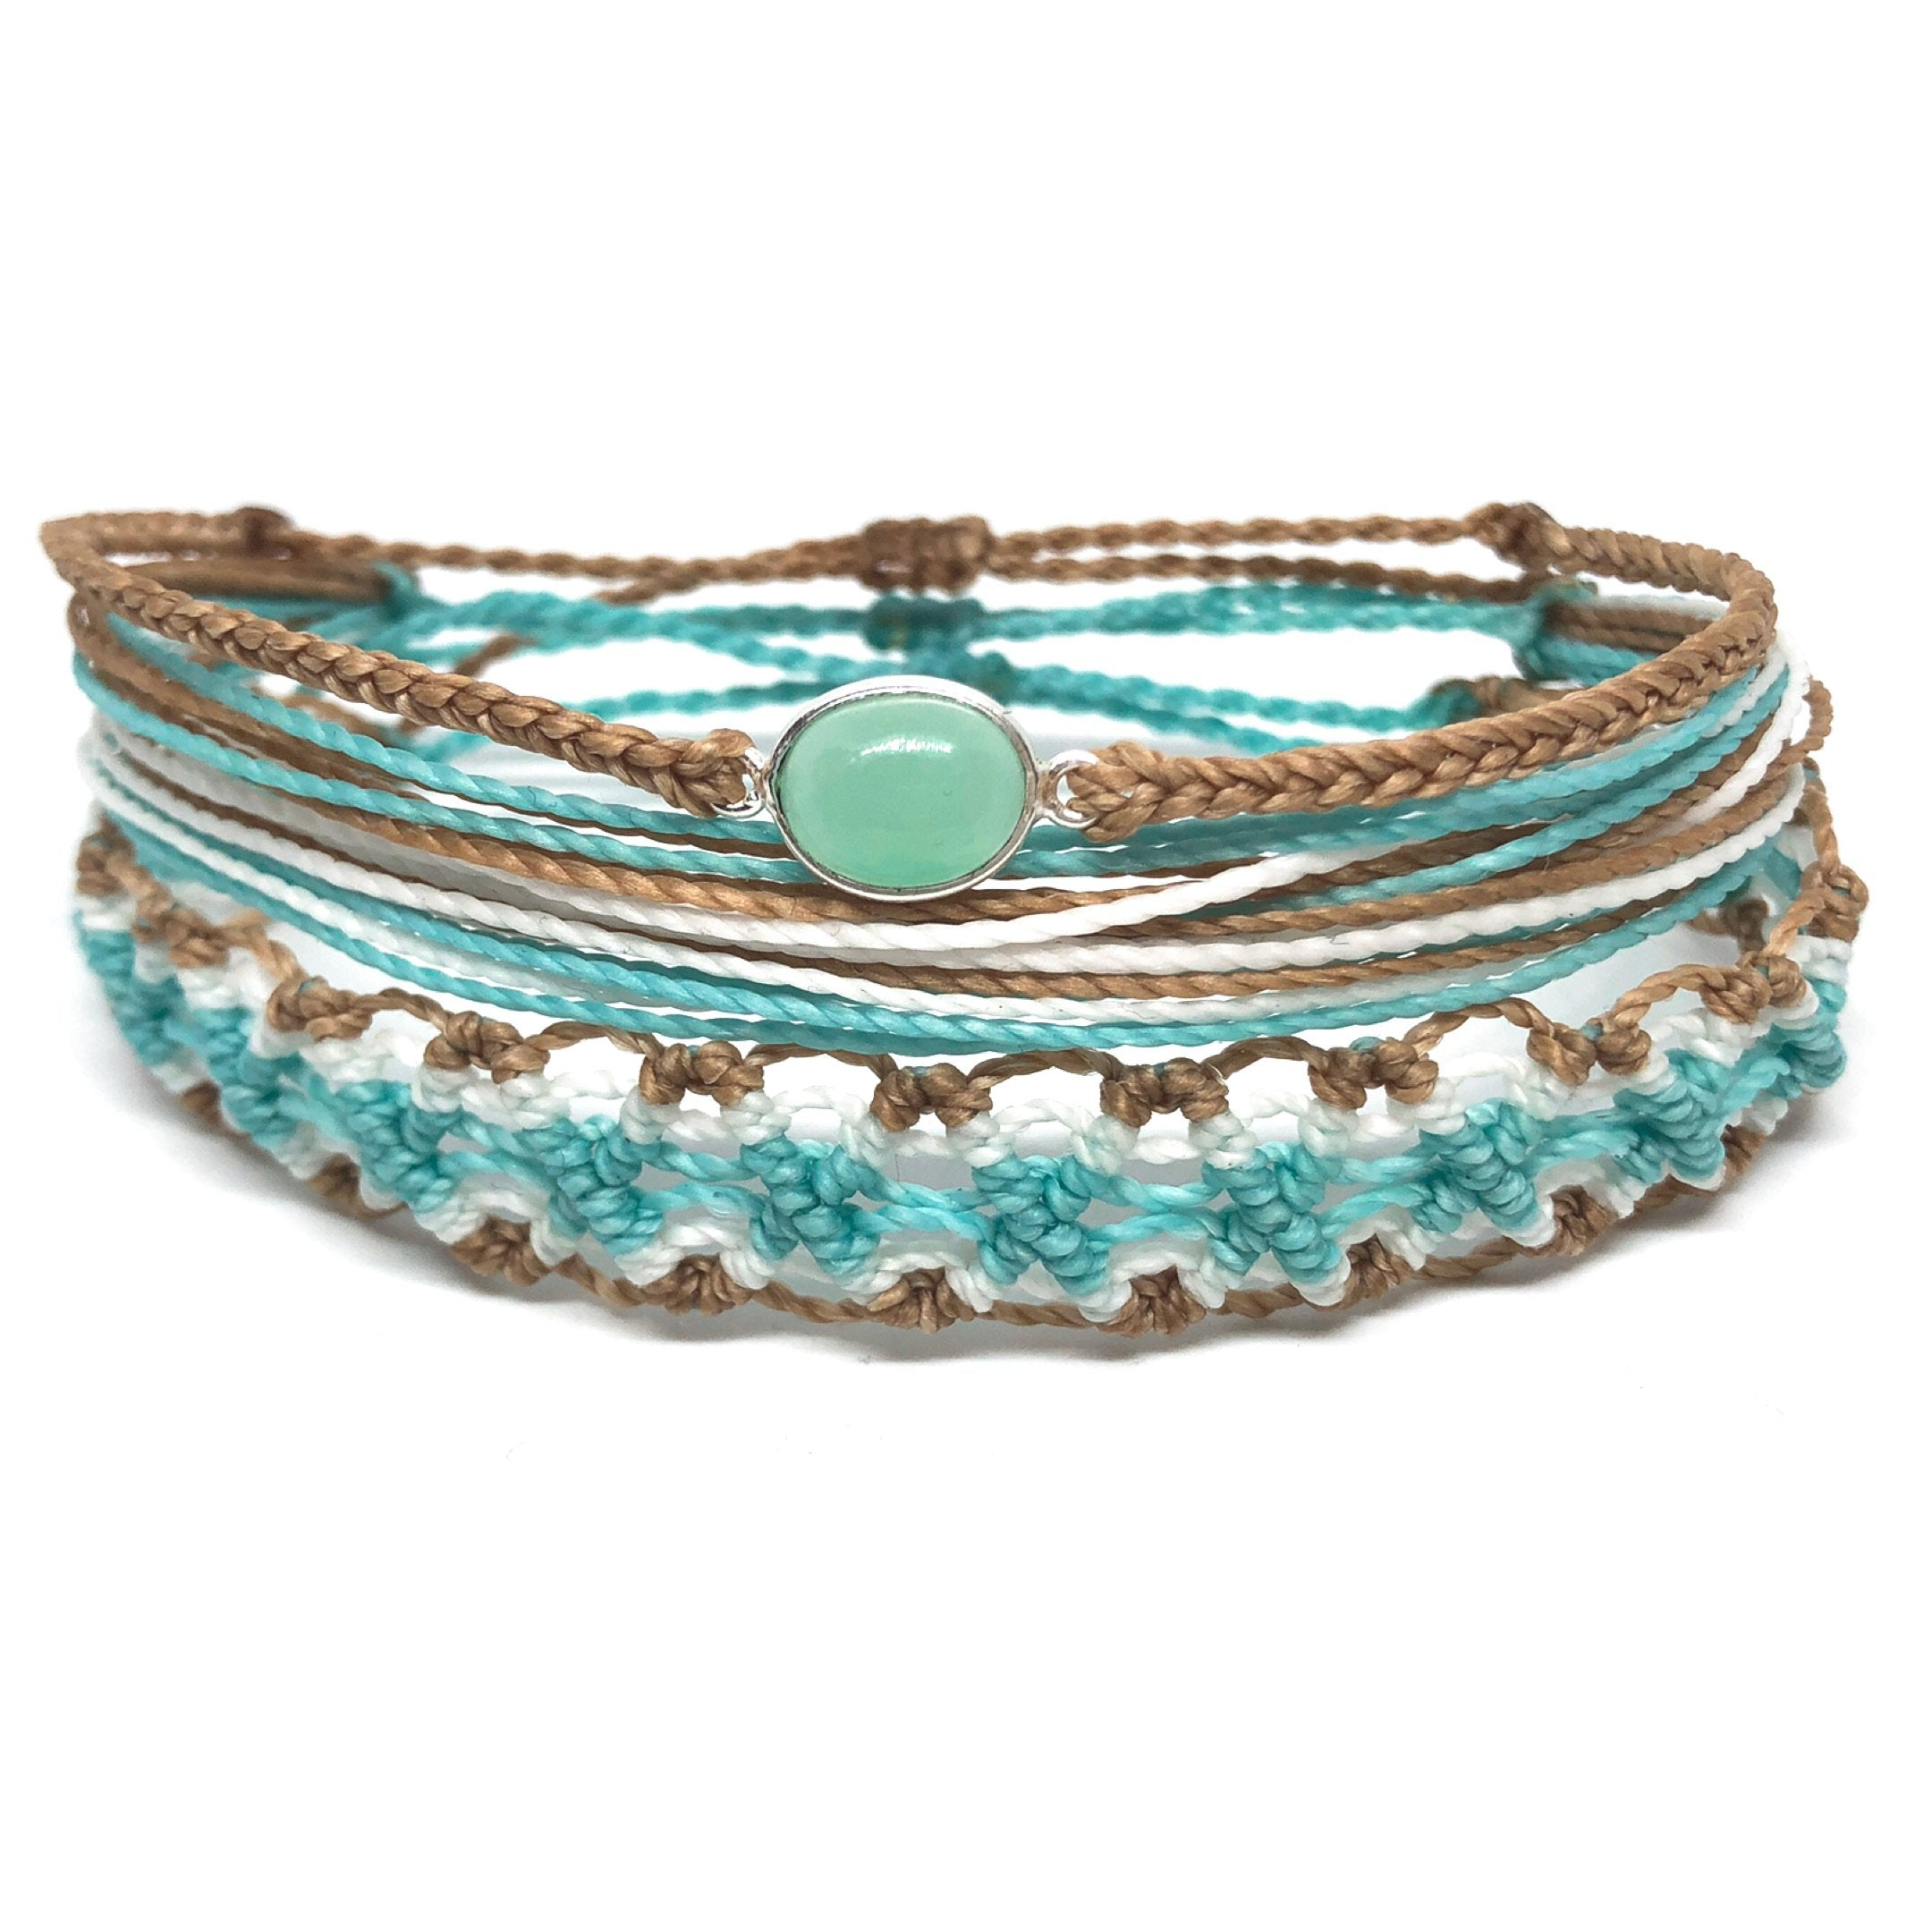 image of Sandy Shore gemstone bracelet set 3 layers mint, tan, and white